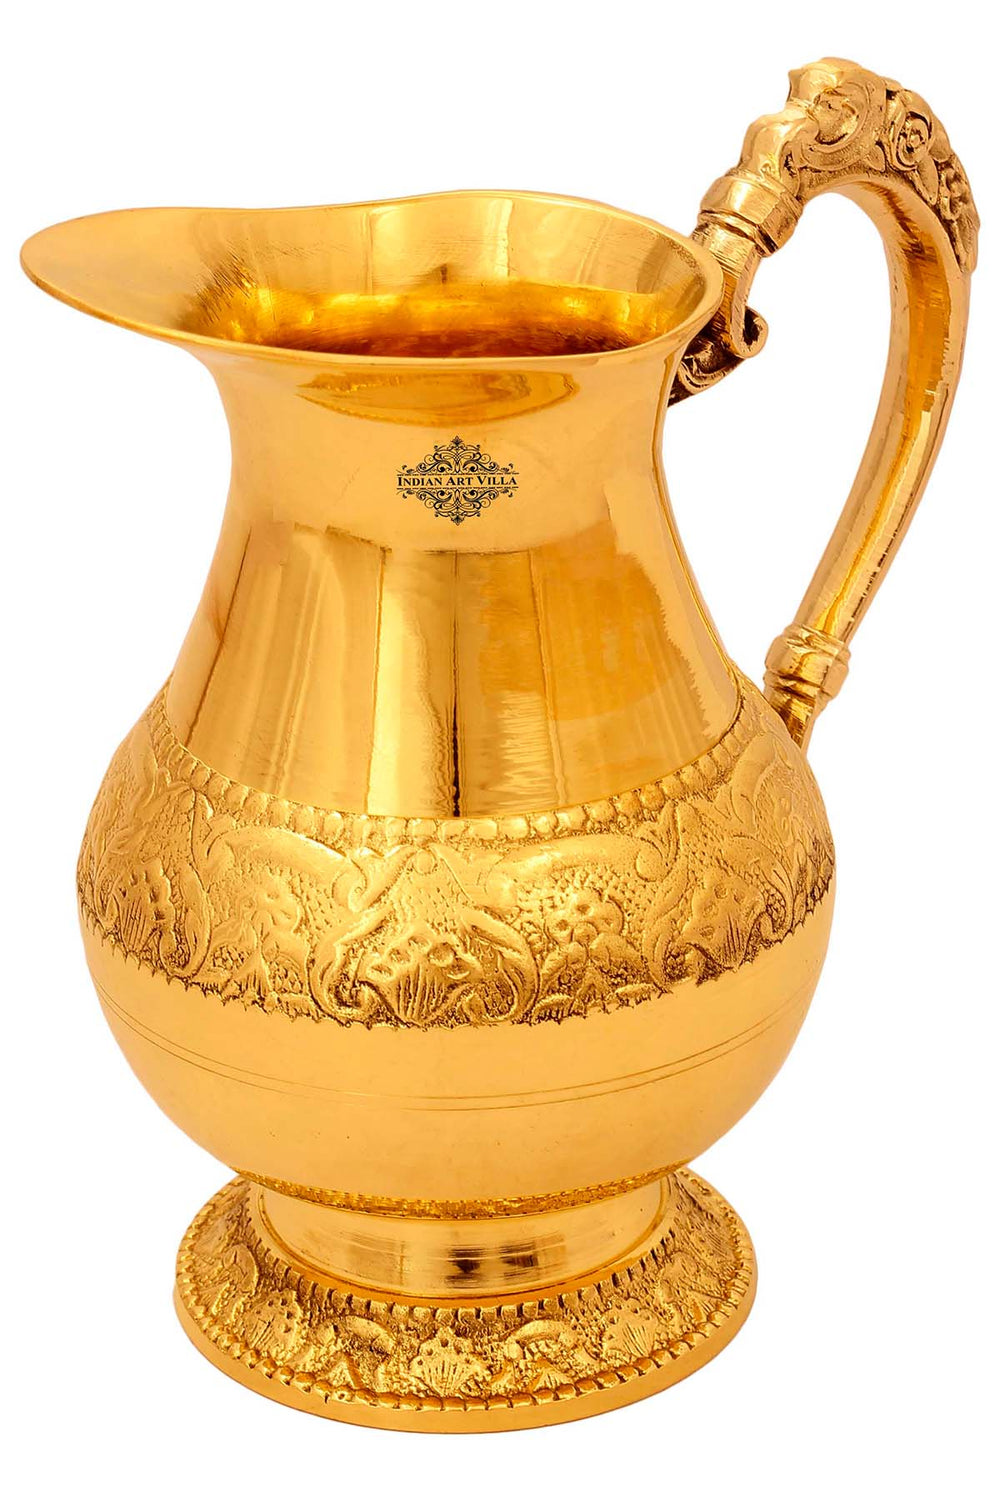 Brass Jug Pitcher, Handwork Designer, Serving & Drinking water, 1000 ML, Gold